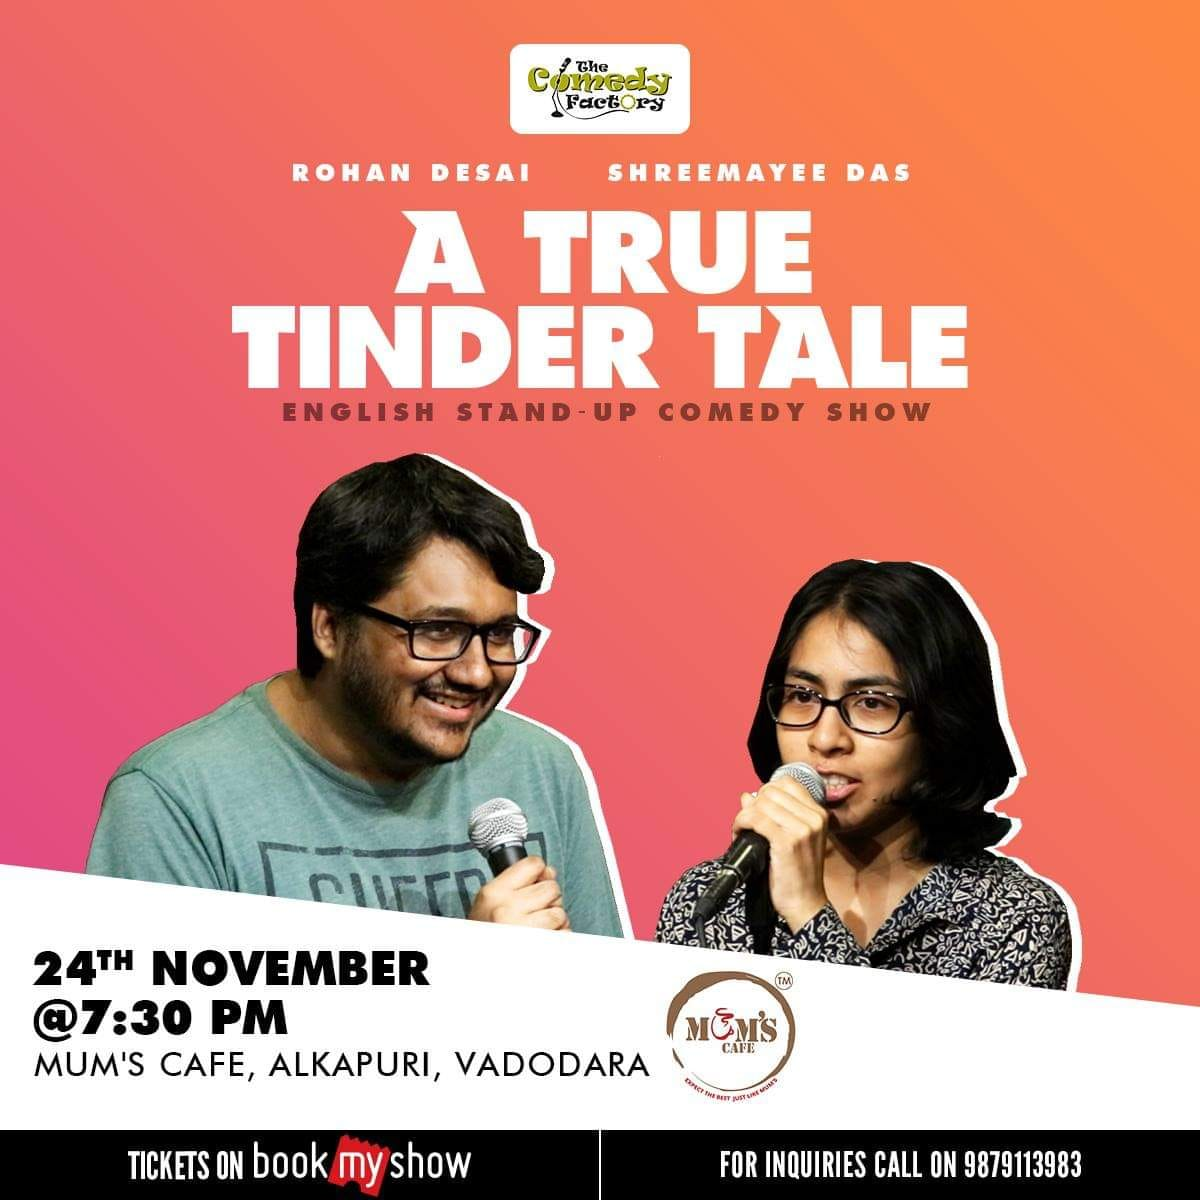 Vadodara folks, this is happening tonight. @MautKaPashinda & @weepli will tell you a true tinder tale. DO NOT MISS THIS. #vadodara https://t.co/Mr4DHsutxv